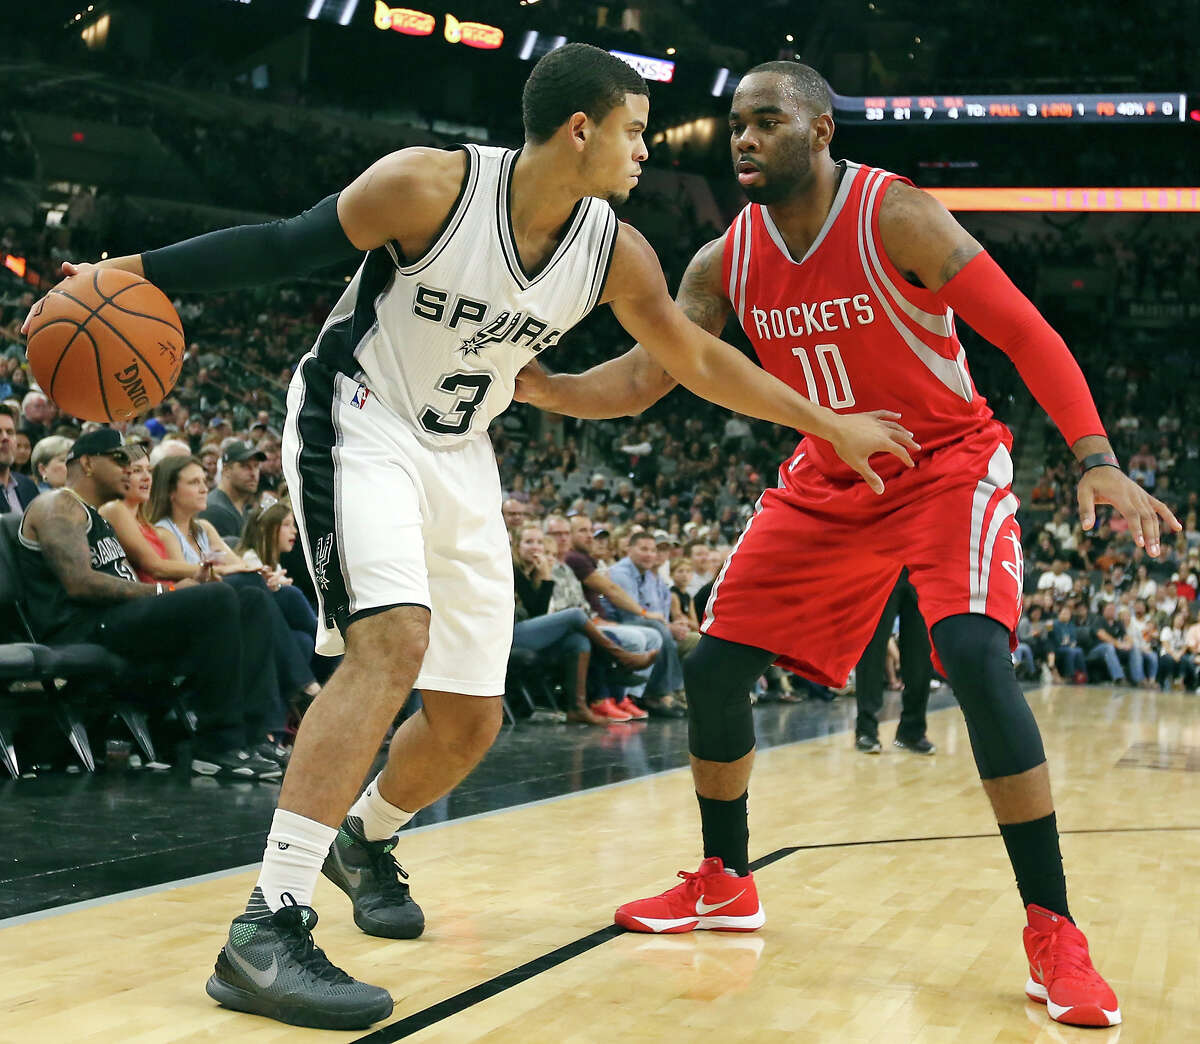 San Antonio Spurs' Ray McCallum looks for room around Houston Rockets' Marcus Thornton during second half action Friday Oct. 23, 2015 at the AT&T Center. The Spurs won 111-86.